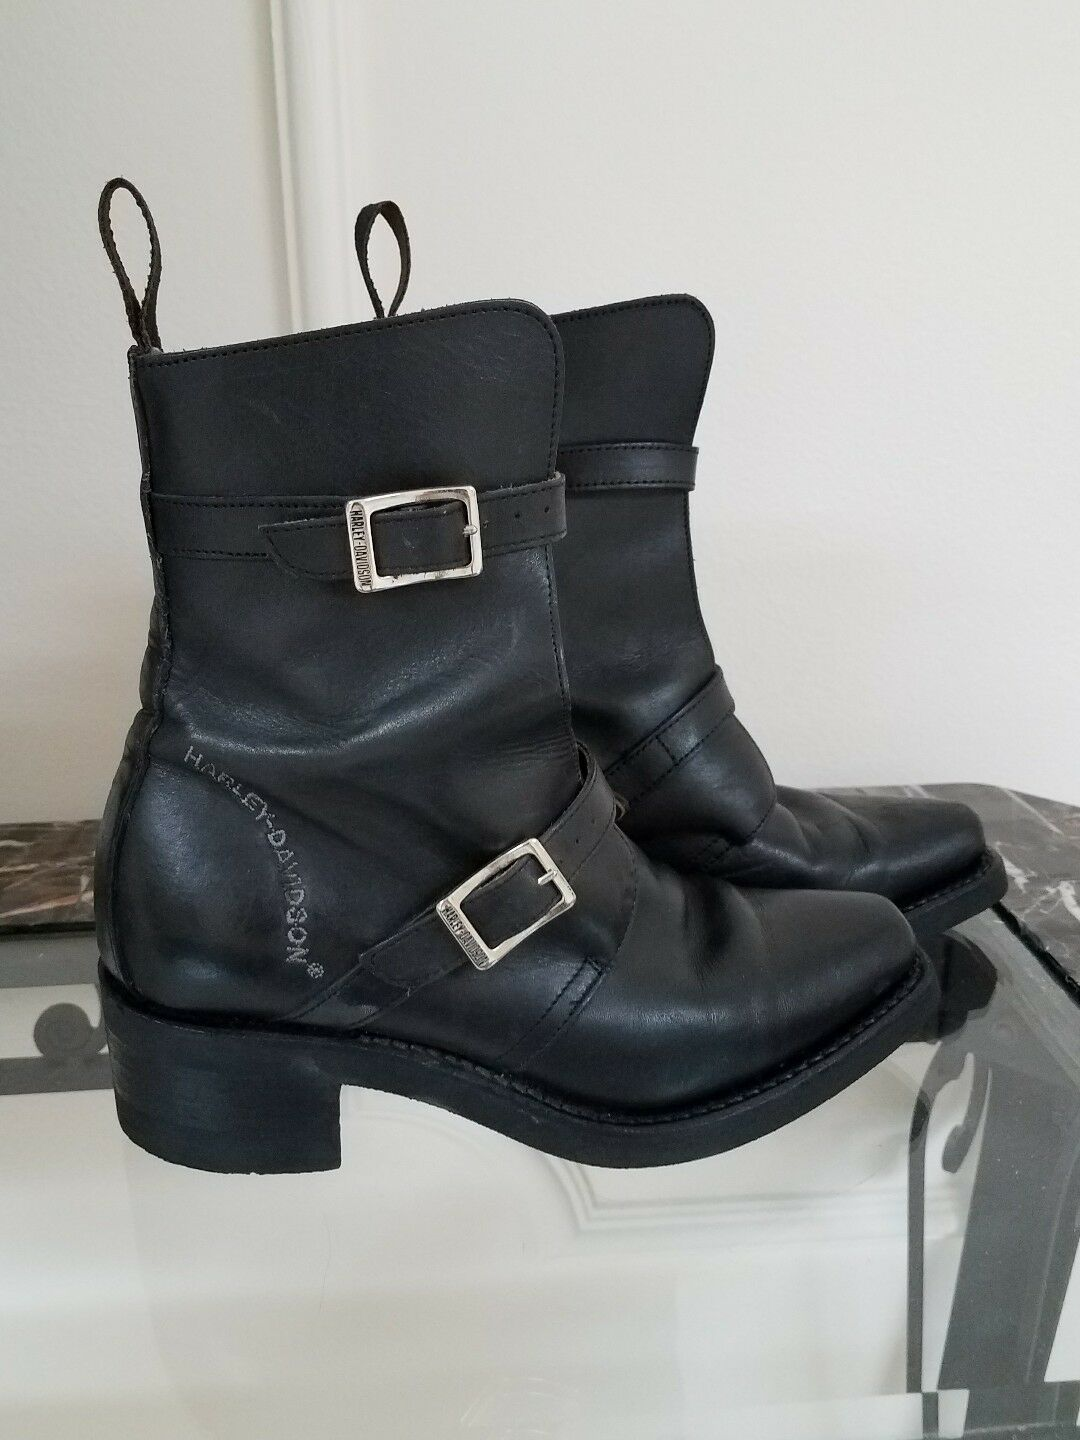 Harley Davidson Women Leather 2 Buckle Biker Boots Made in Italy size  5.5 USA